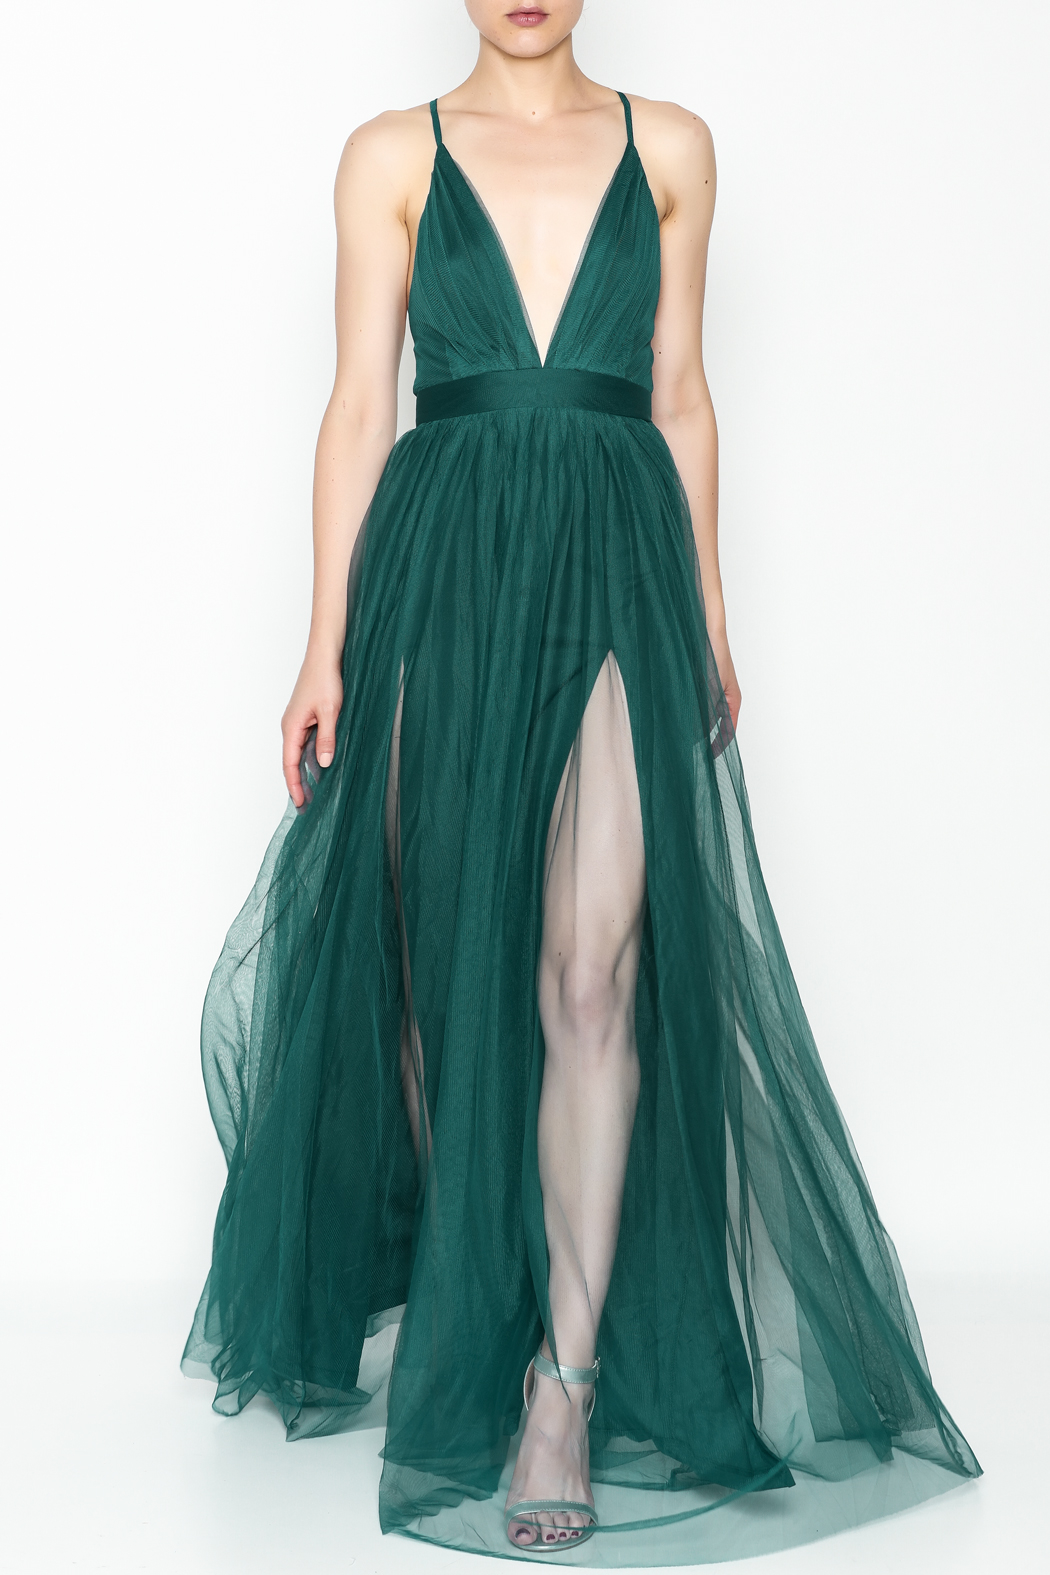 luxxel Tulle Maxi Dress from New York City by Dor L\'Dor — Shoptiques